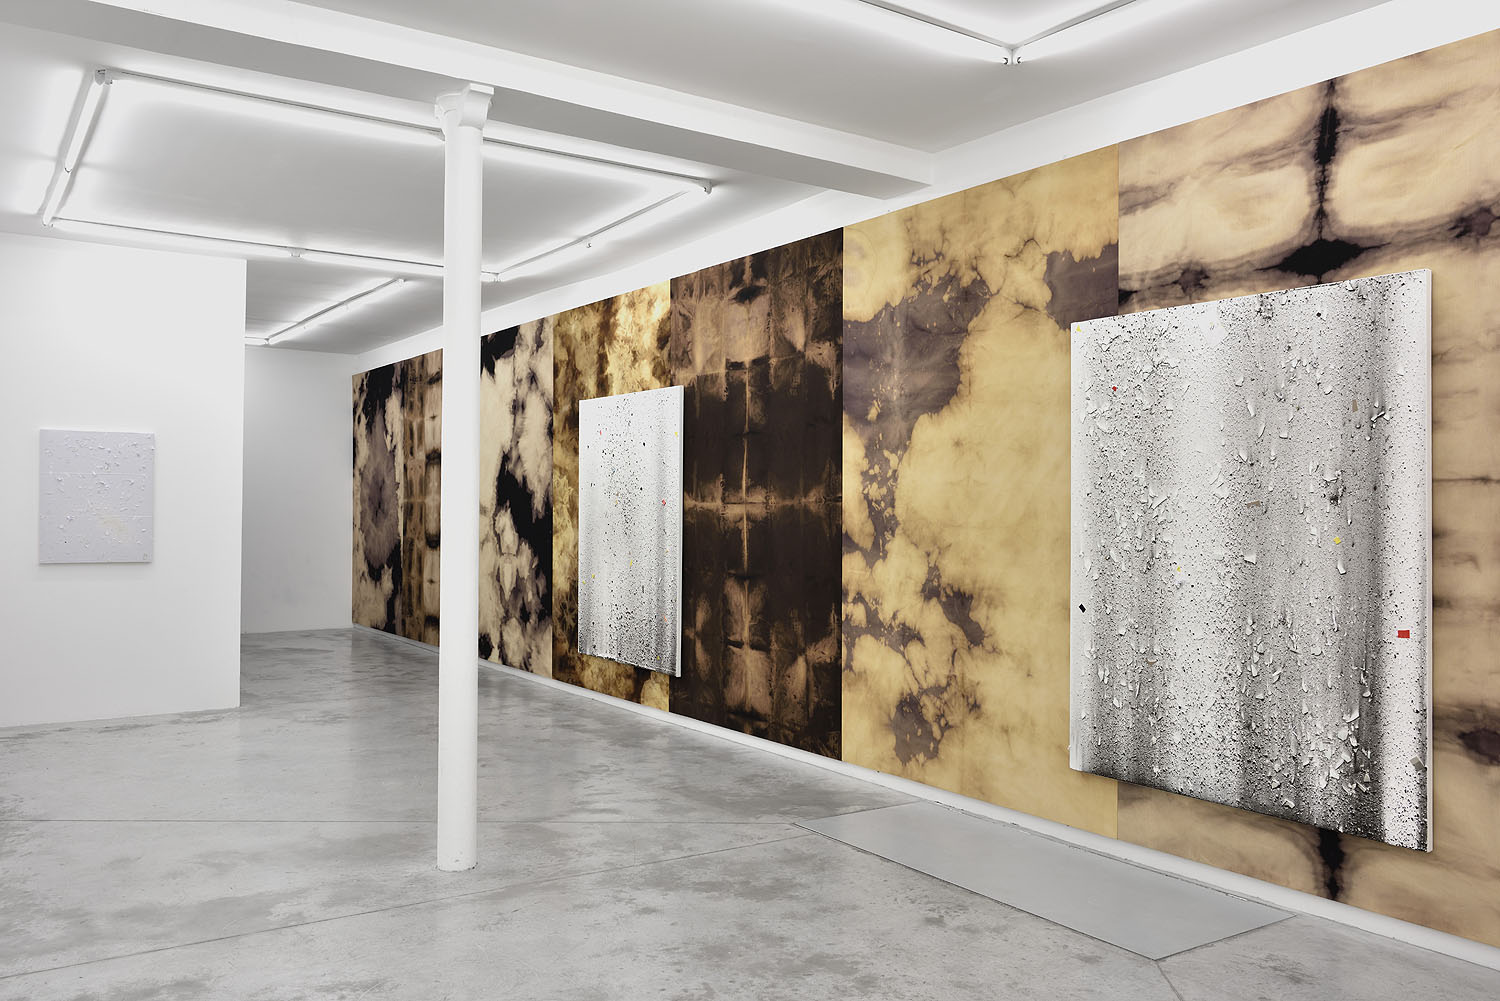 Thomas Fougeirol   OP'S   Installation view at Praz-Delavallade  Paris, FR  February 13 - March 26, 2016